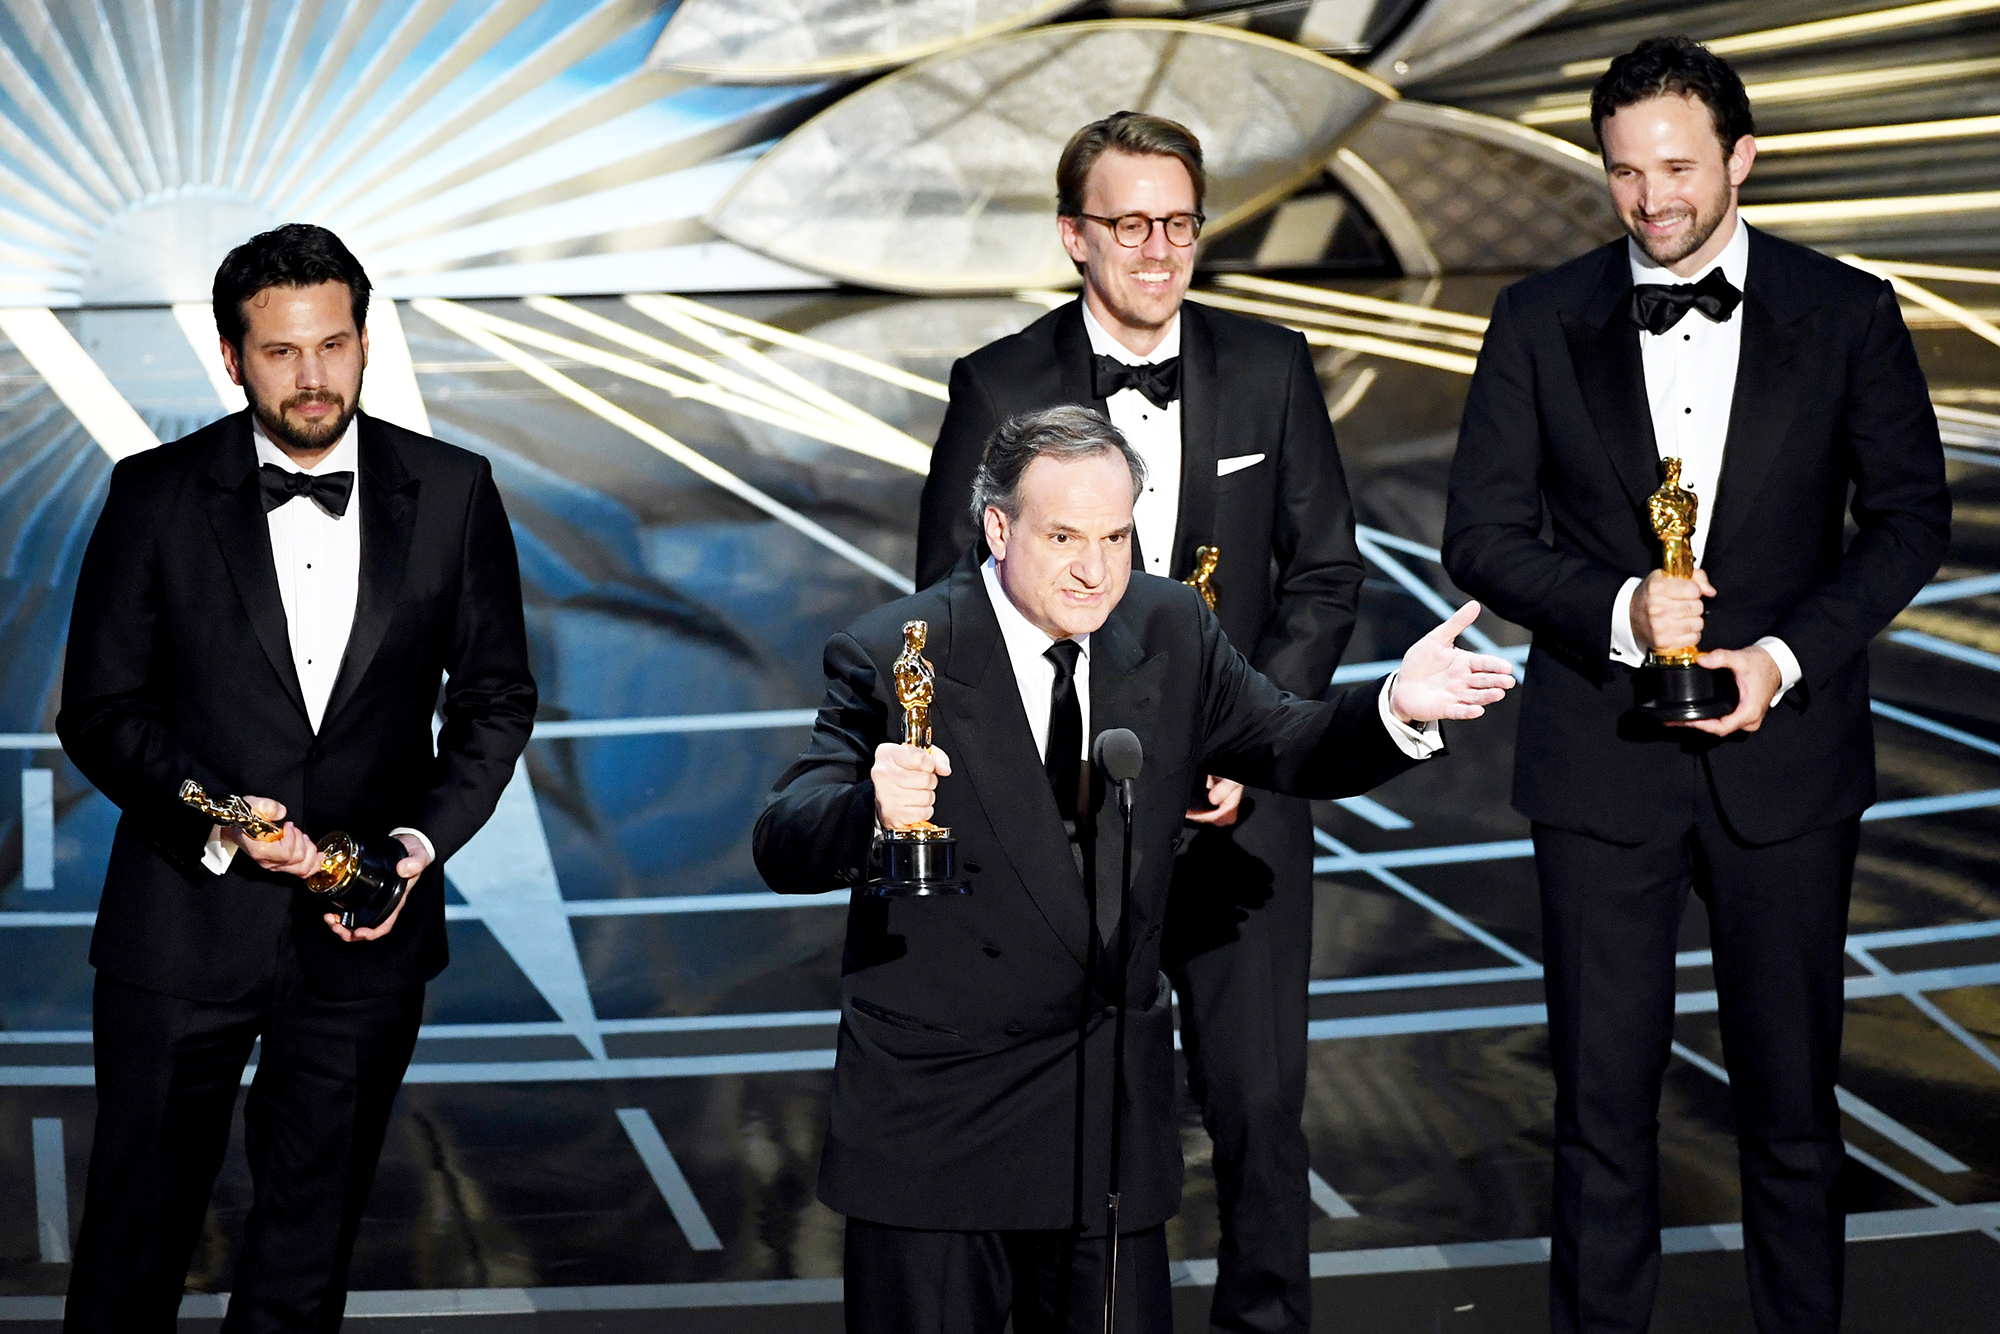 Robert Legato (at microphone) and (L-R) Adam Valdez, Andrew R. Jones, and Dan Lemmon accept Best Visual Effects for 'The Jungle Book' onstage during the 89th Annual Academy Awards at Hollywood & Highland Center on February 26, 2017 in Hollywood, California.